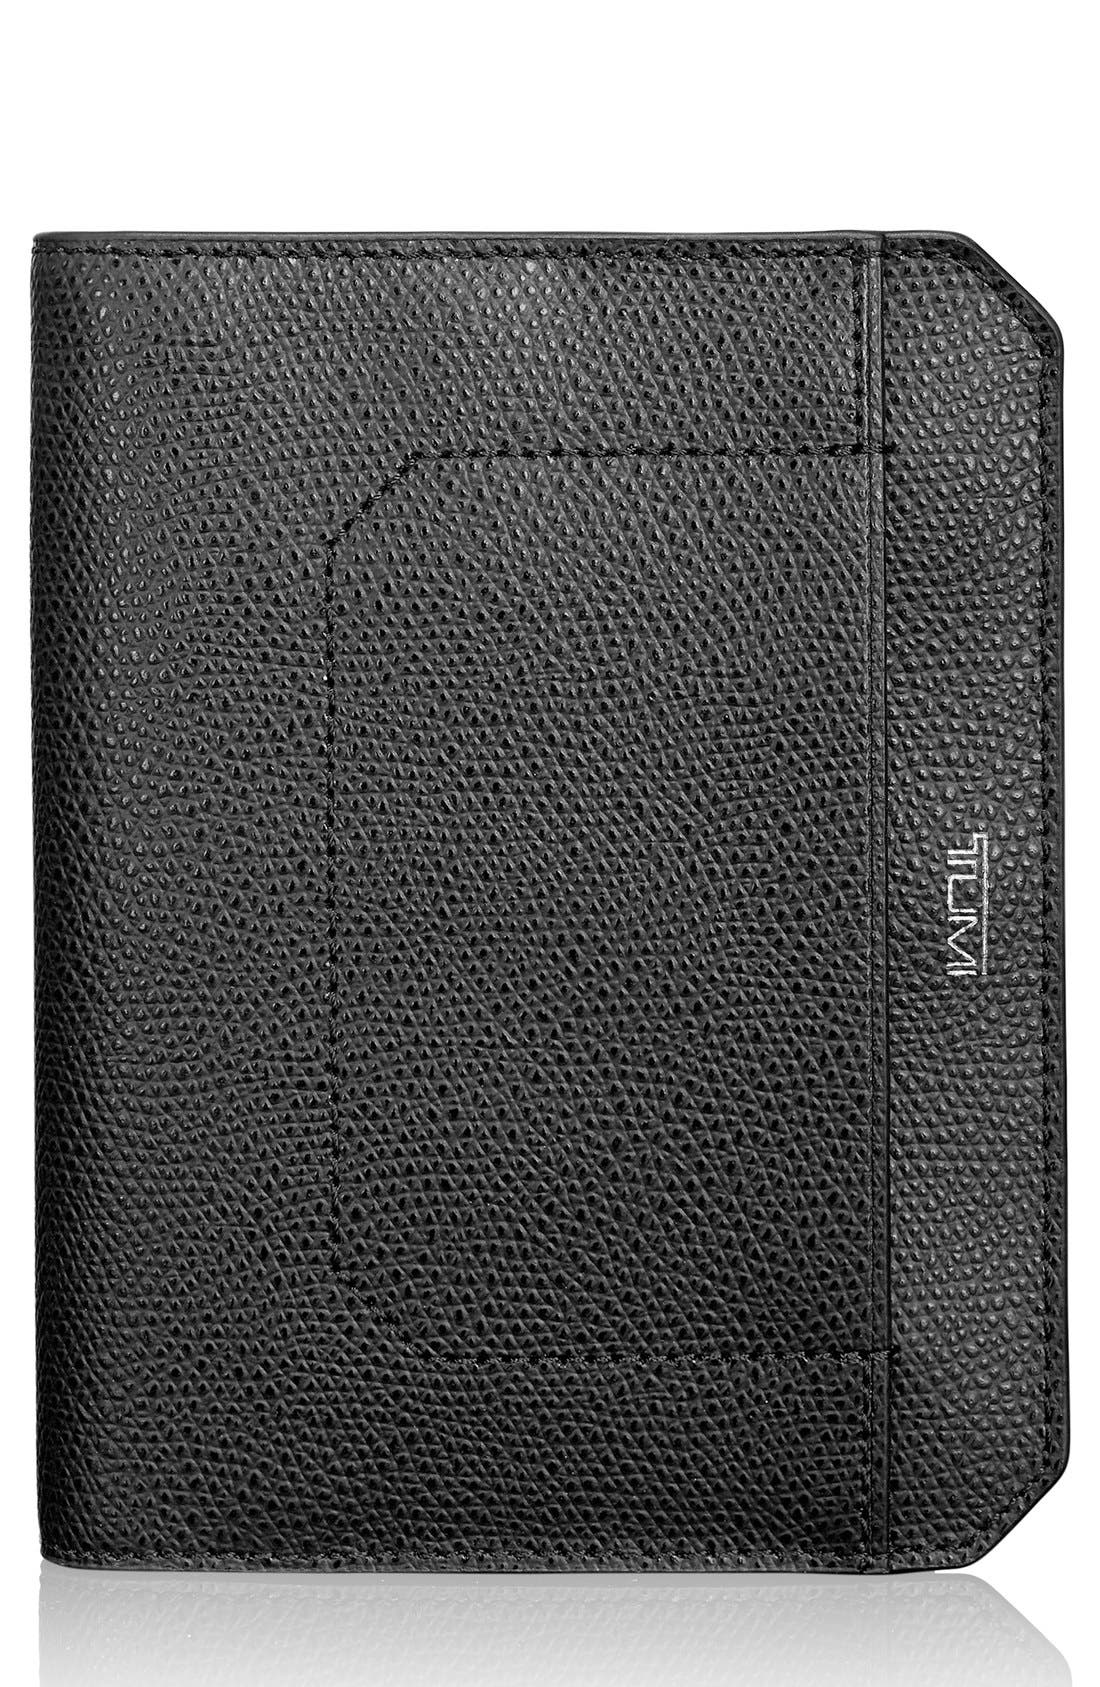 Tumi Leather Passport Cover